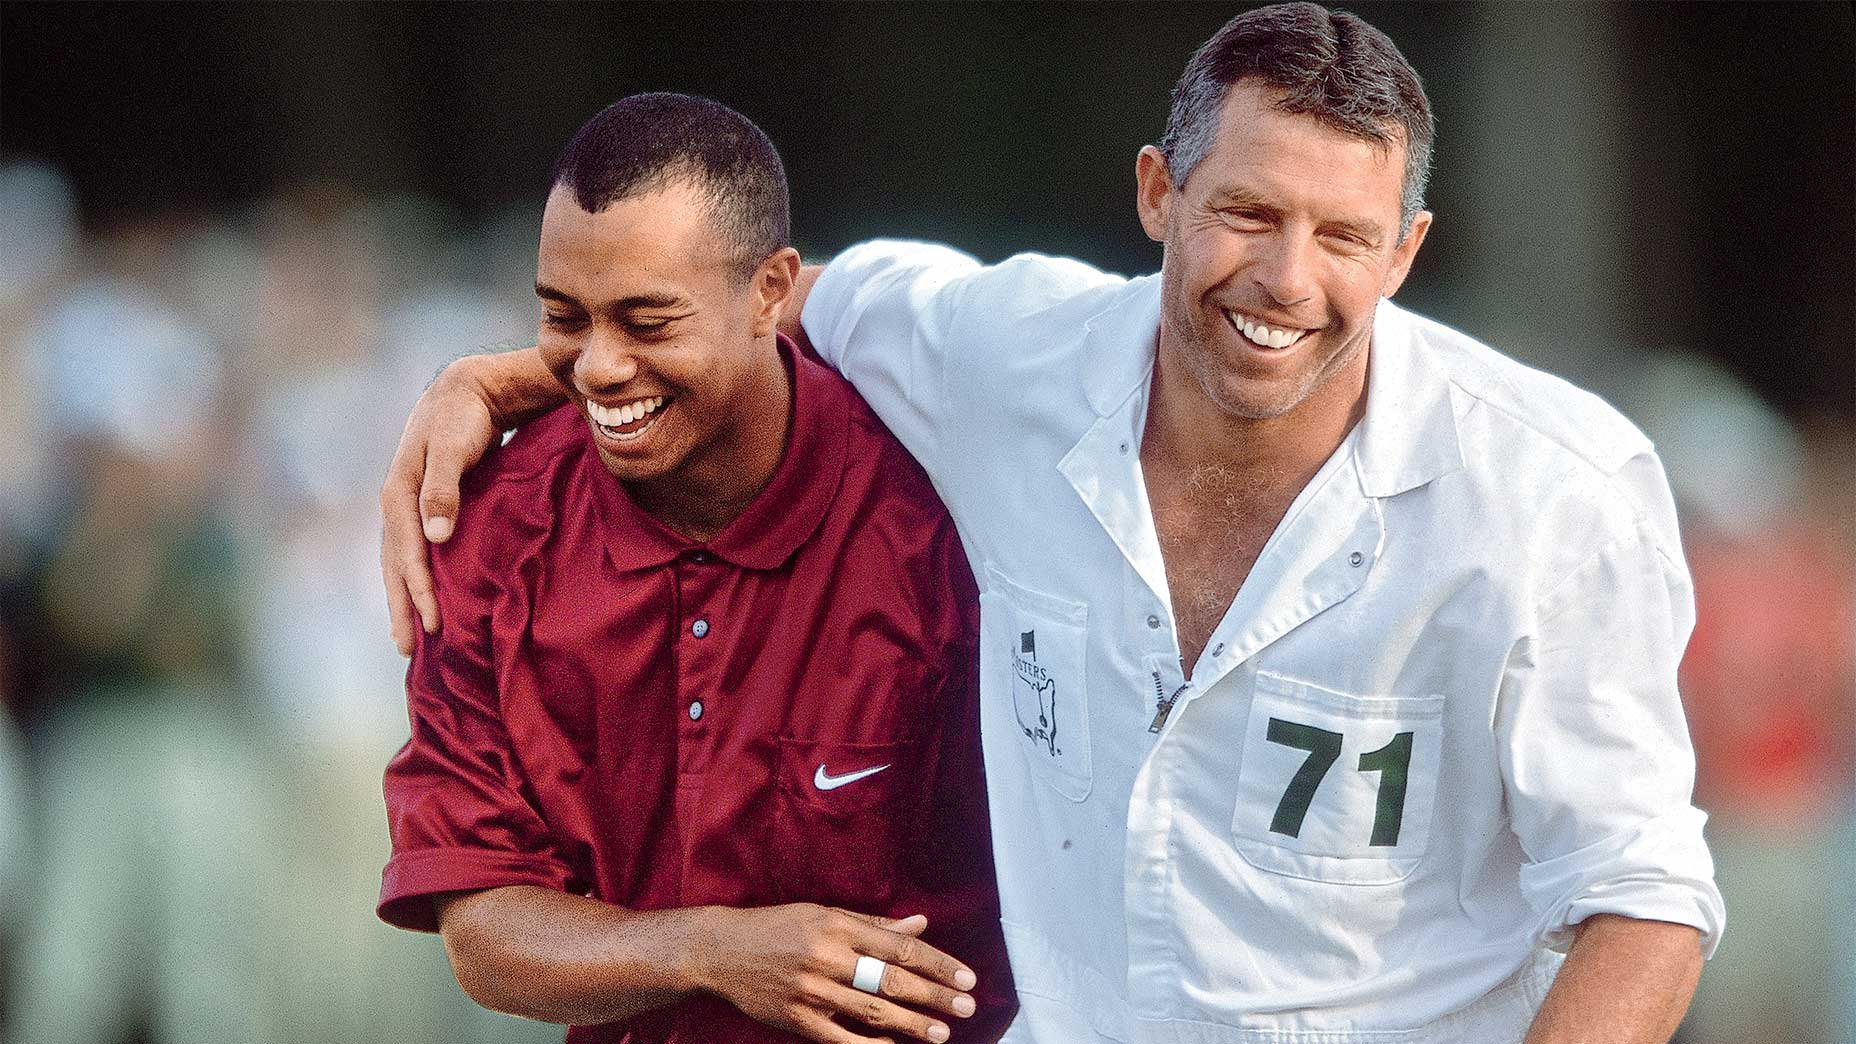 Tiger Woods and Steve Williams at the 2001 Masters.